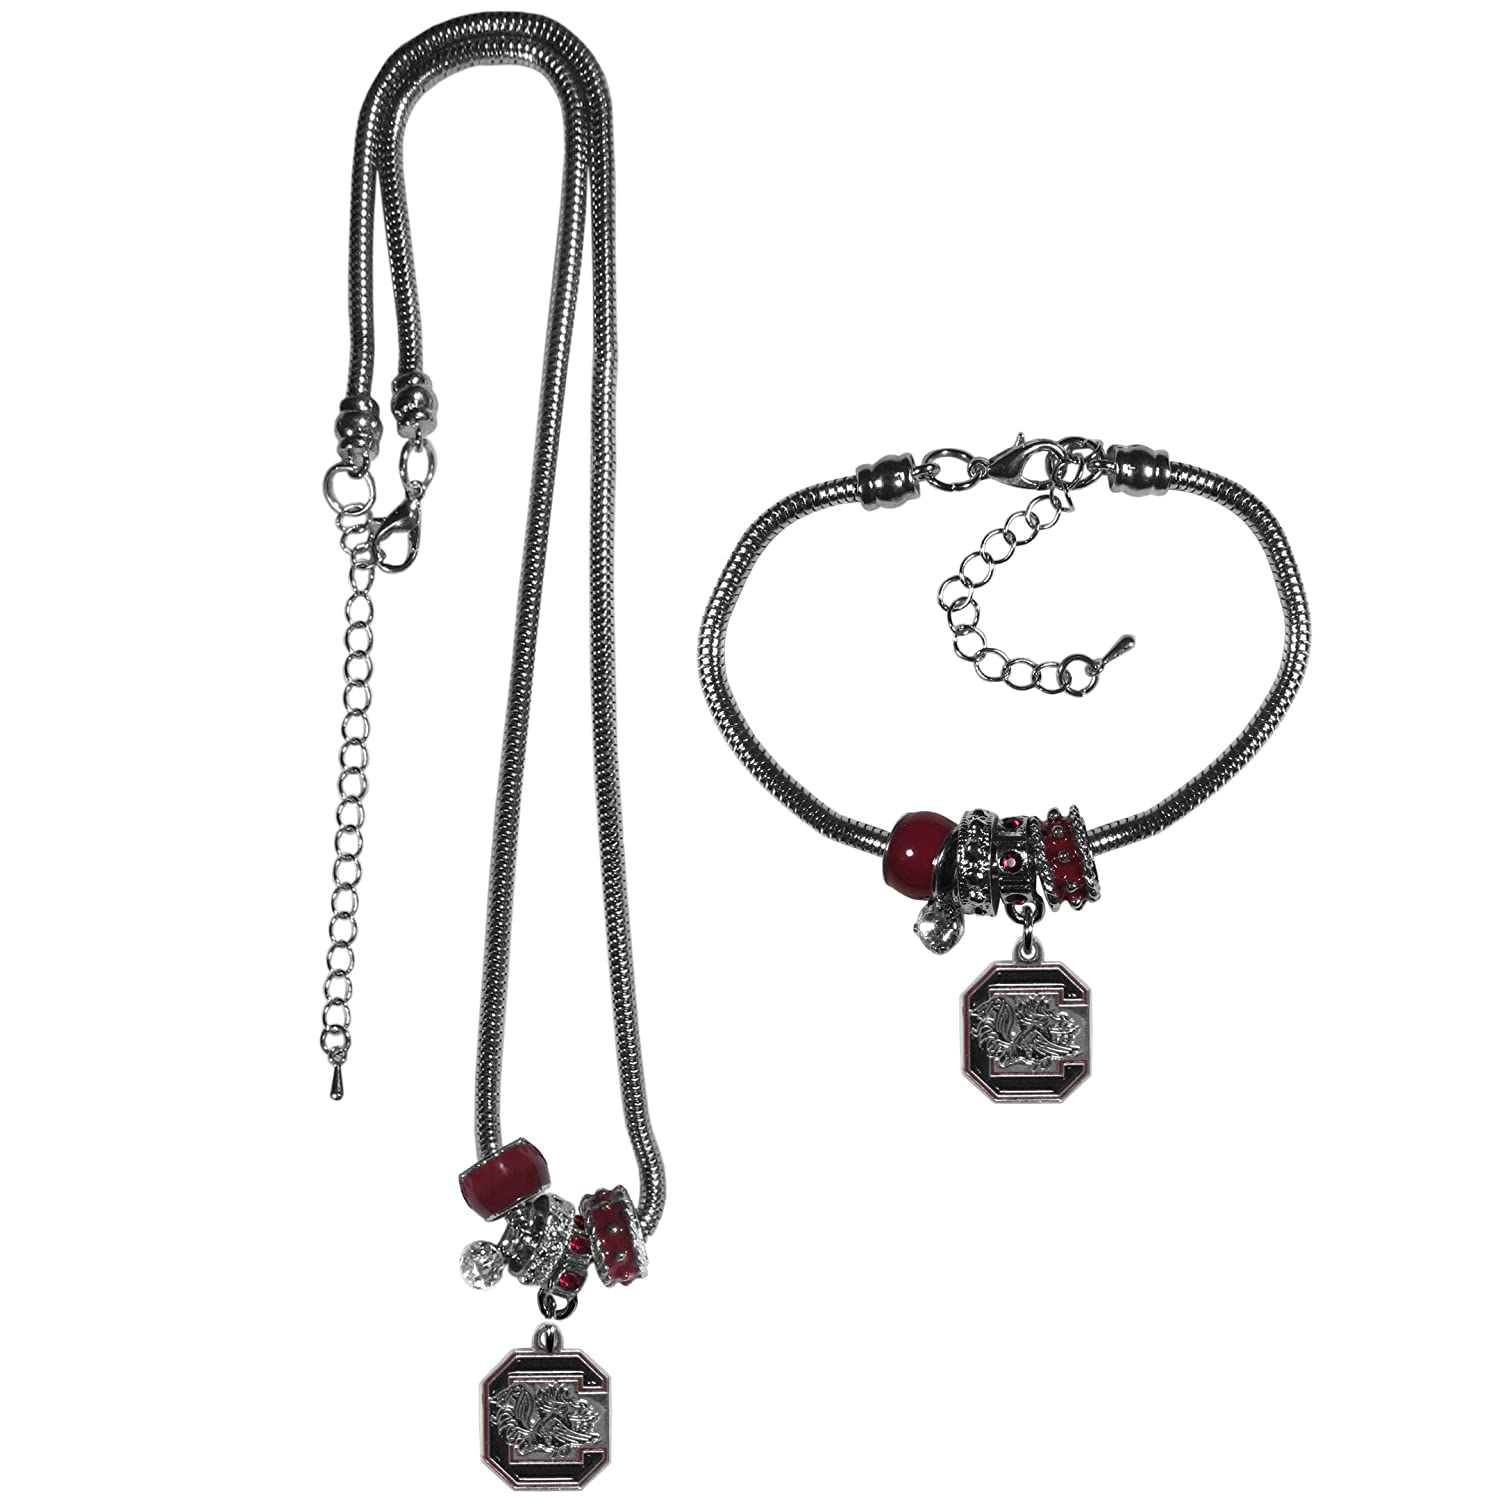 Siskiyou NCAA Womens Euro Bead Necklace and Bracelet Set